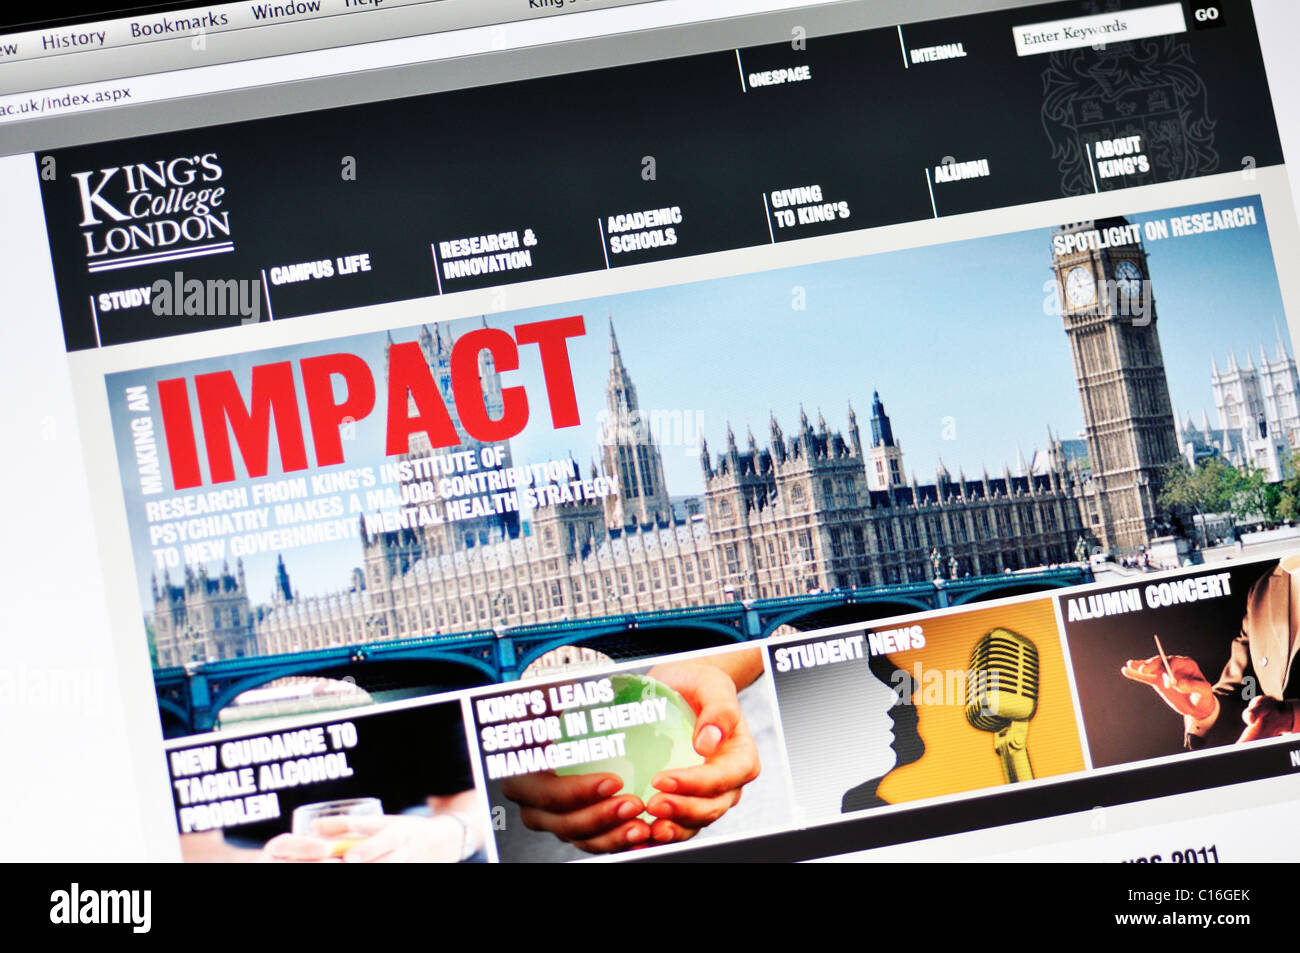 King's College website (London) - Stock Image